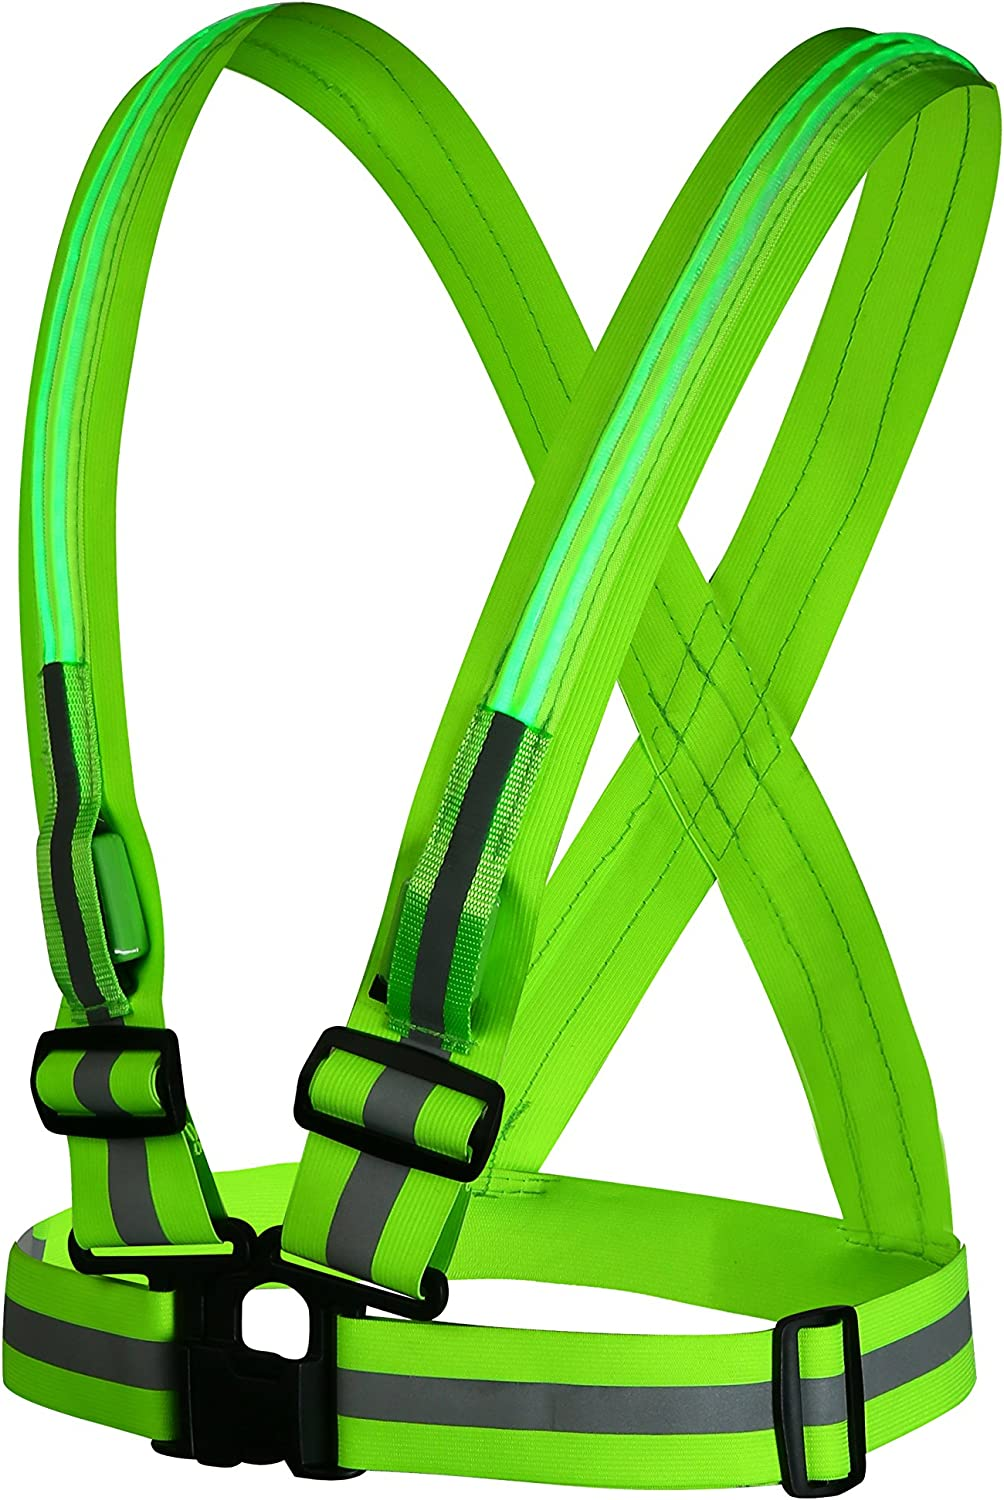 Safety Vest Yacig USB Rechargeable LED Reflective Safety Warning Vest for Outdoor Activities High Visibility with Double Illumination Strips - Green